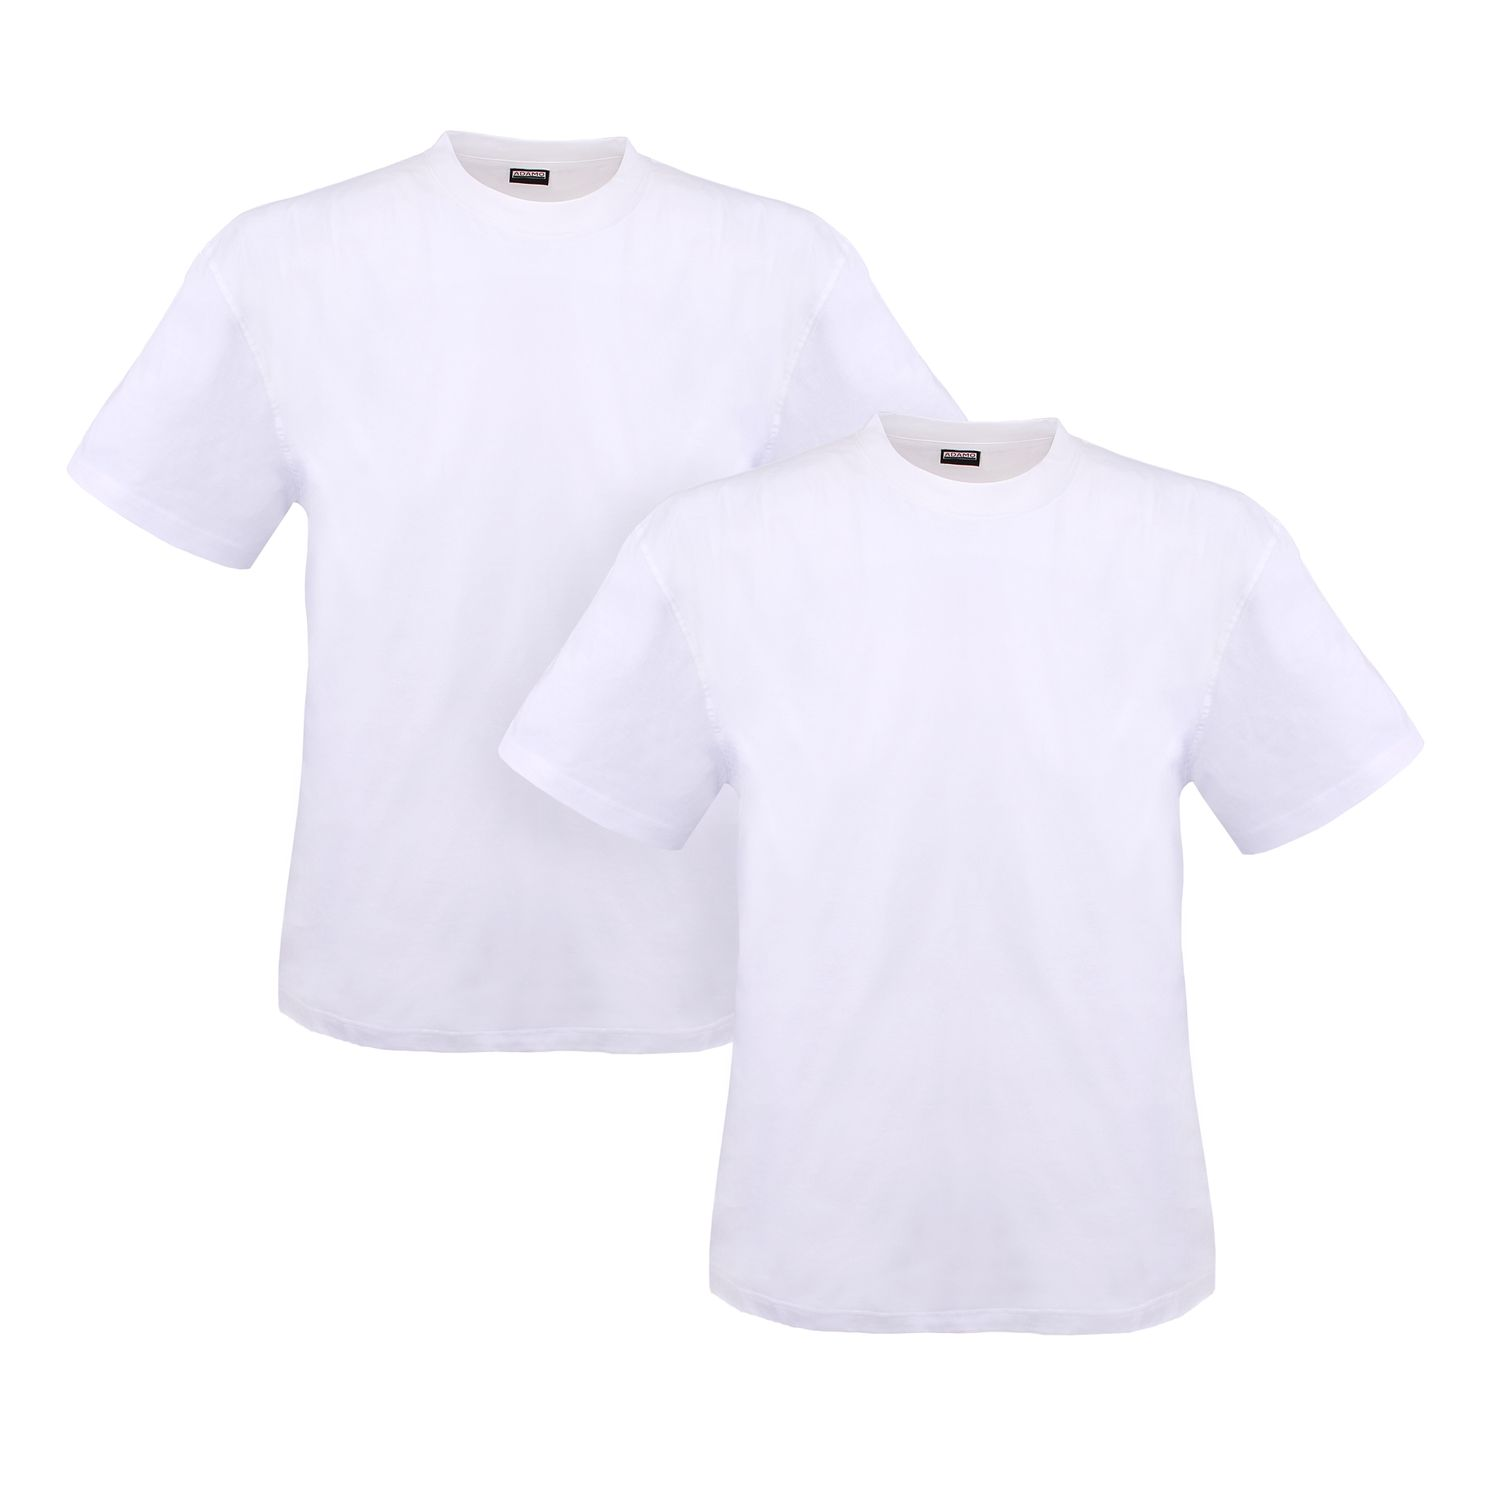 Detail Image to Double pack white MARLON t-shirt by ADAMO up to kingsize 12XL